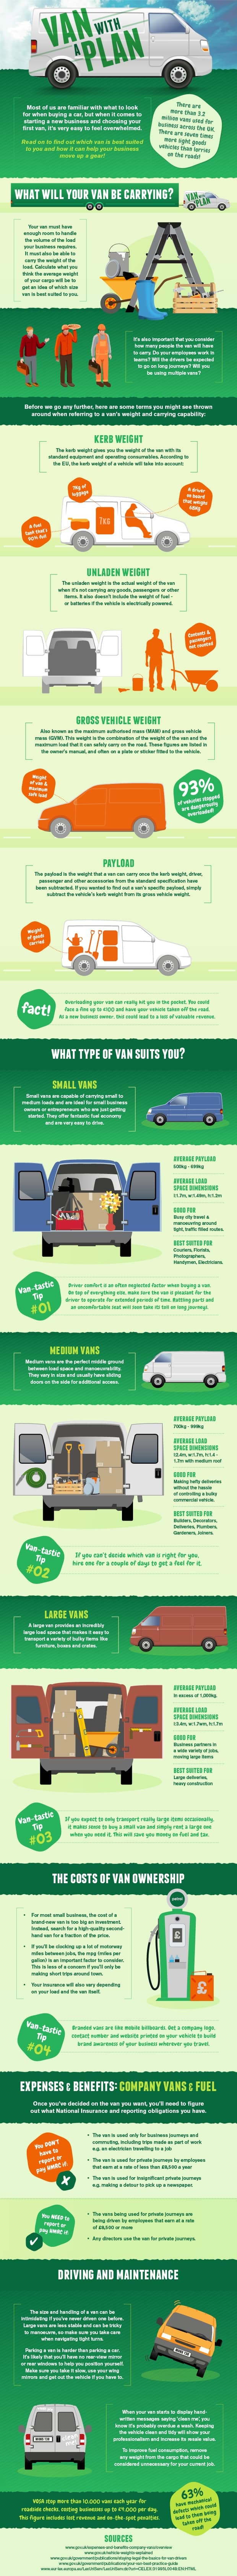 Van with a plan infographic full 1 - Van With A Plan